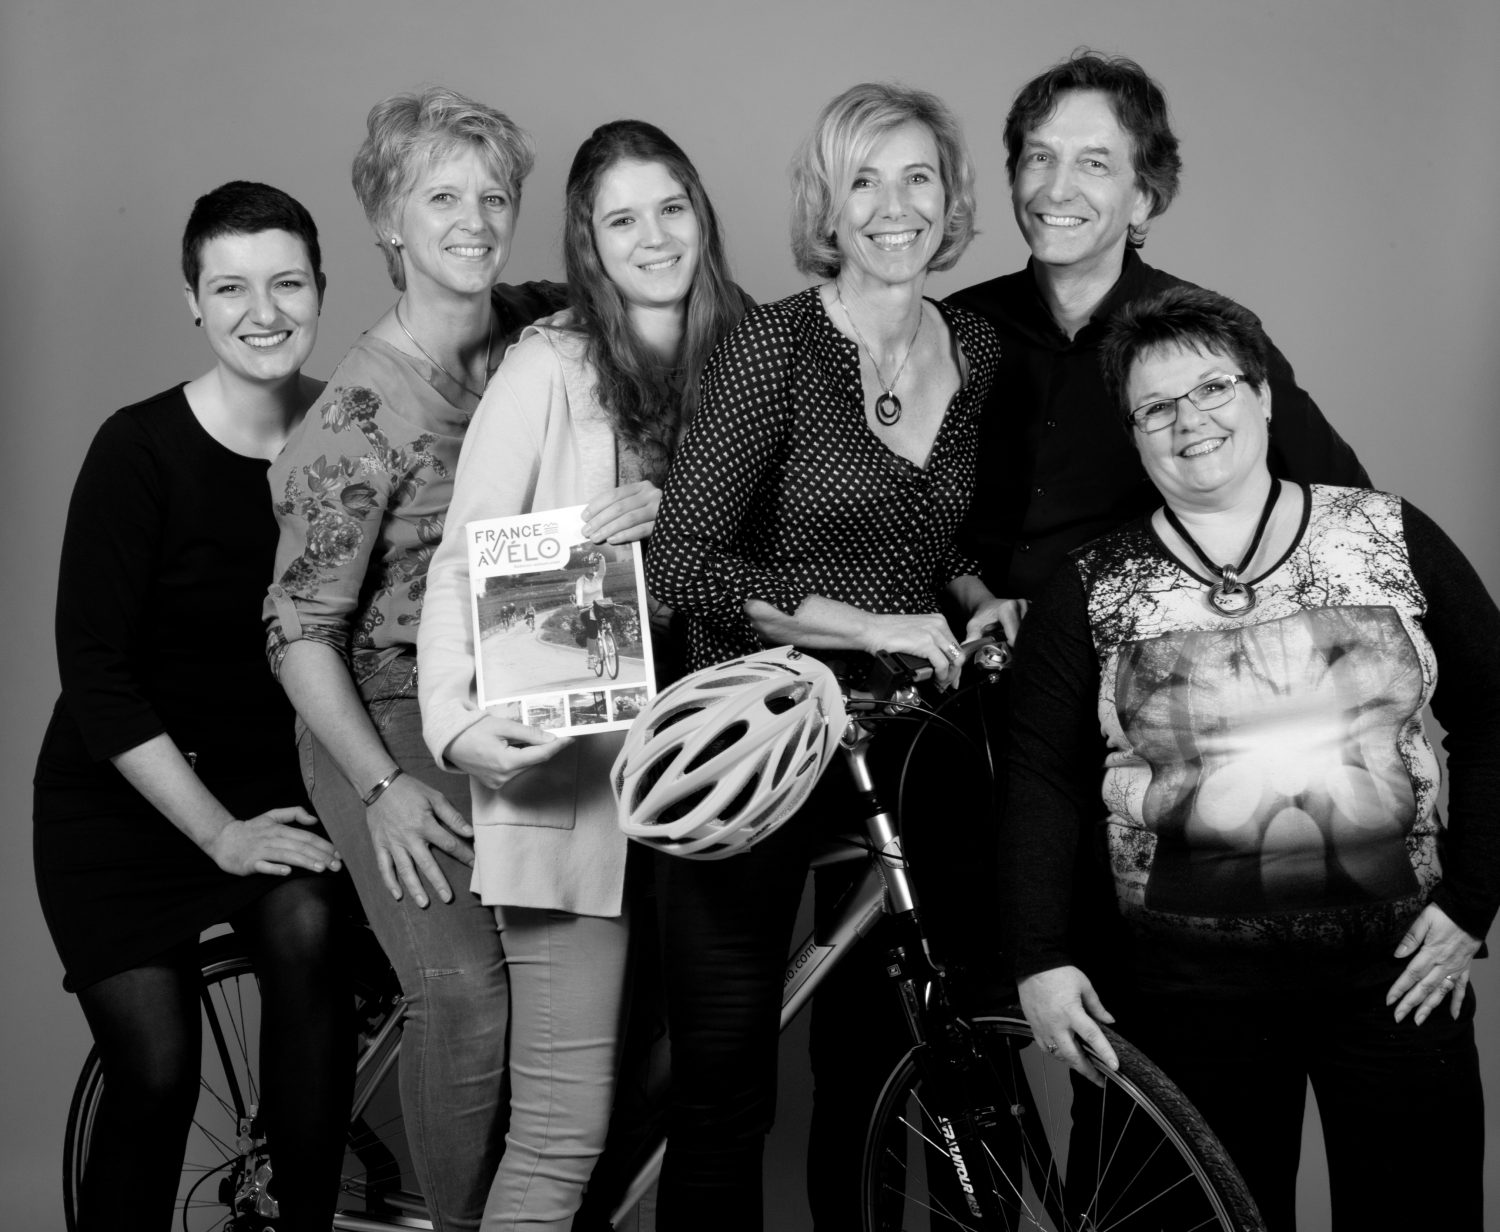 Photo of the team of France à Vélo